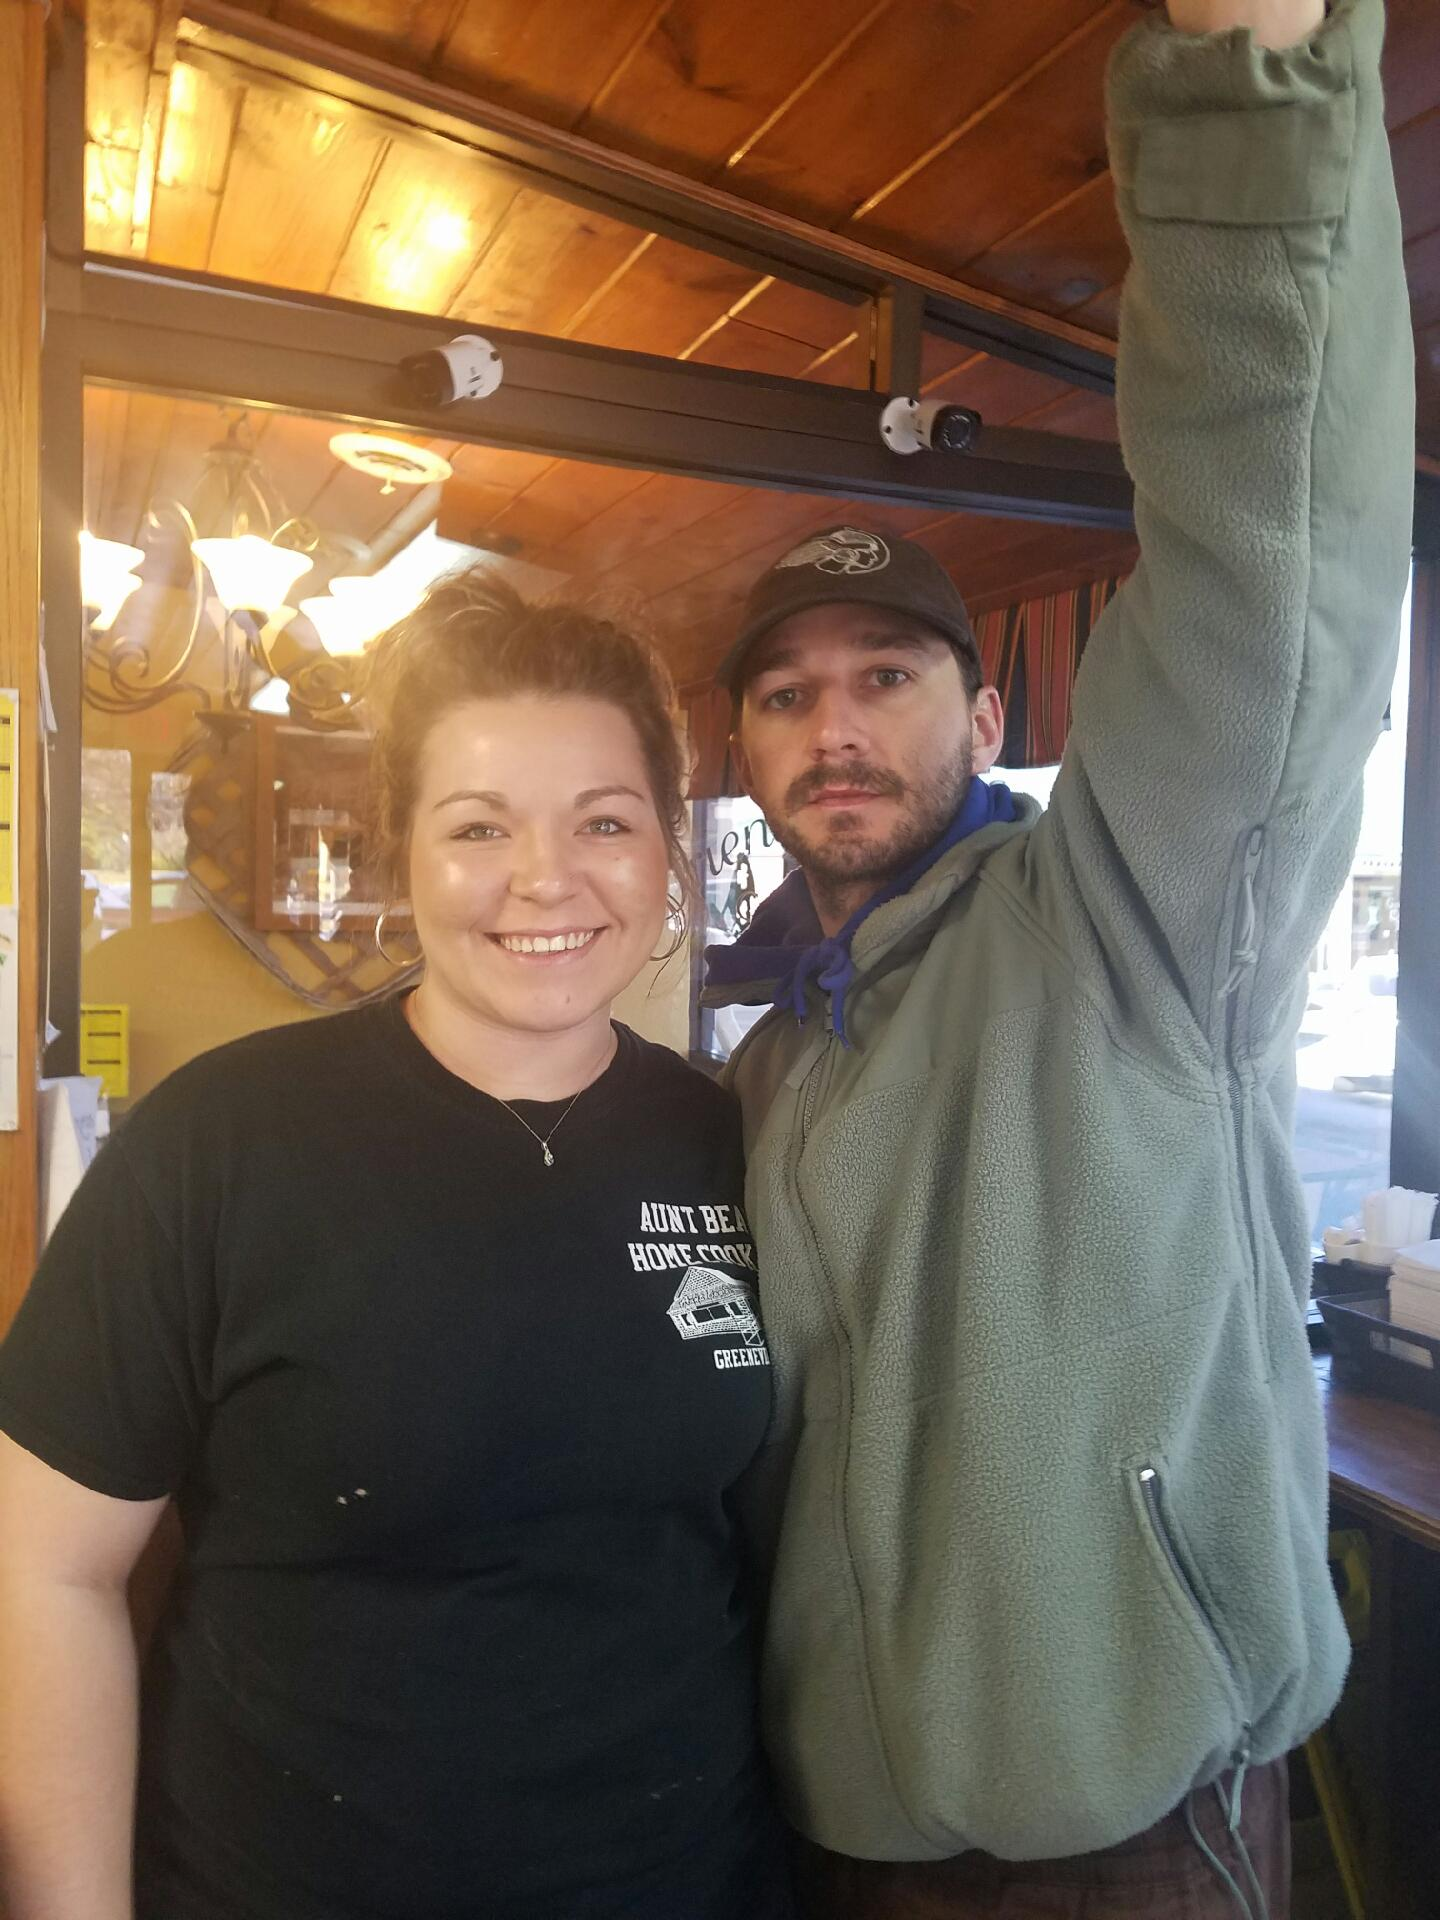 Rachel Stapleton (left) said she asked a customer if he was Shia LeBeouf.   He said yes, and he agreed to quick photo Sunday morning.